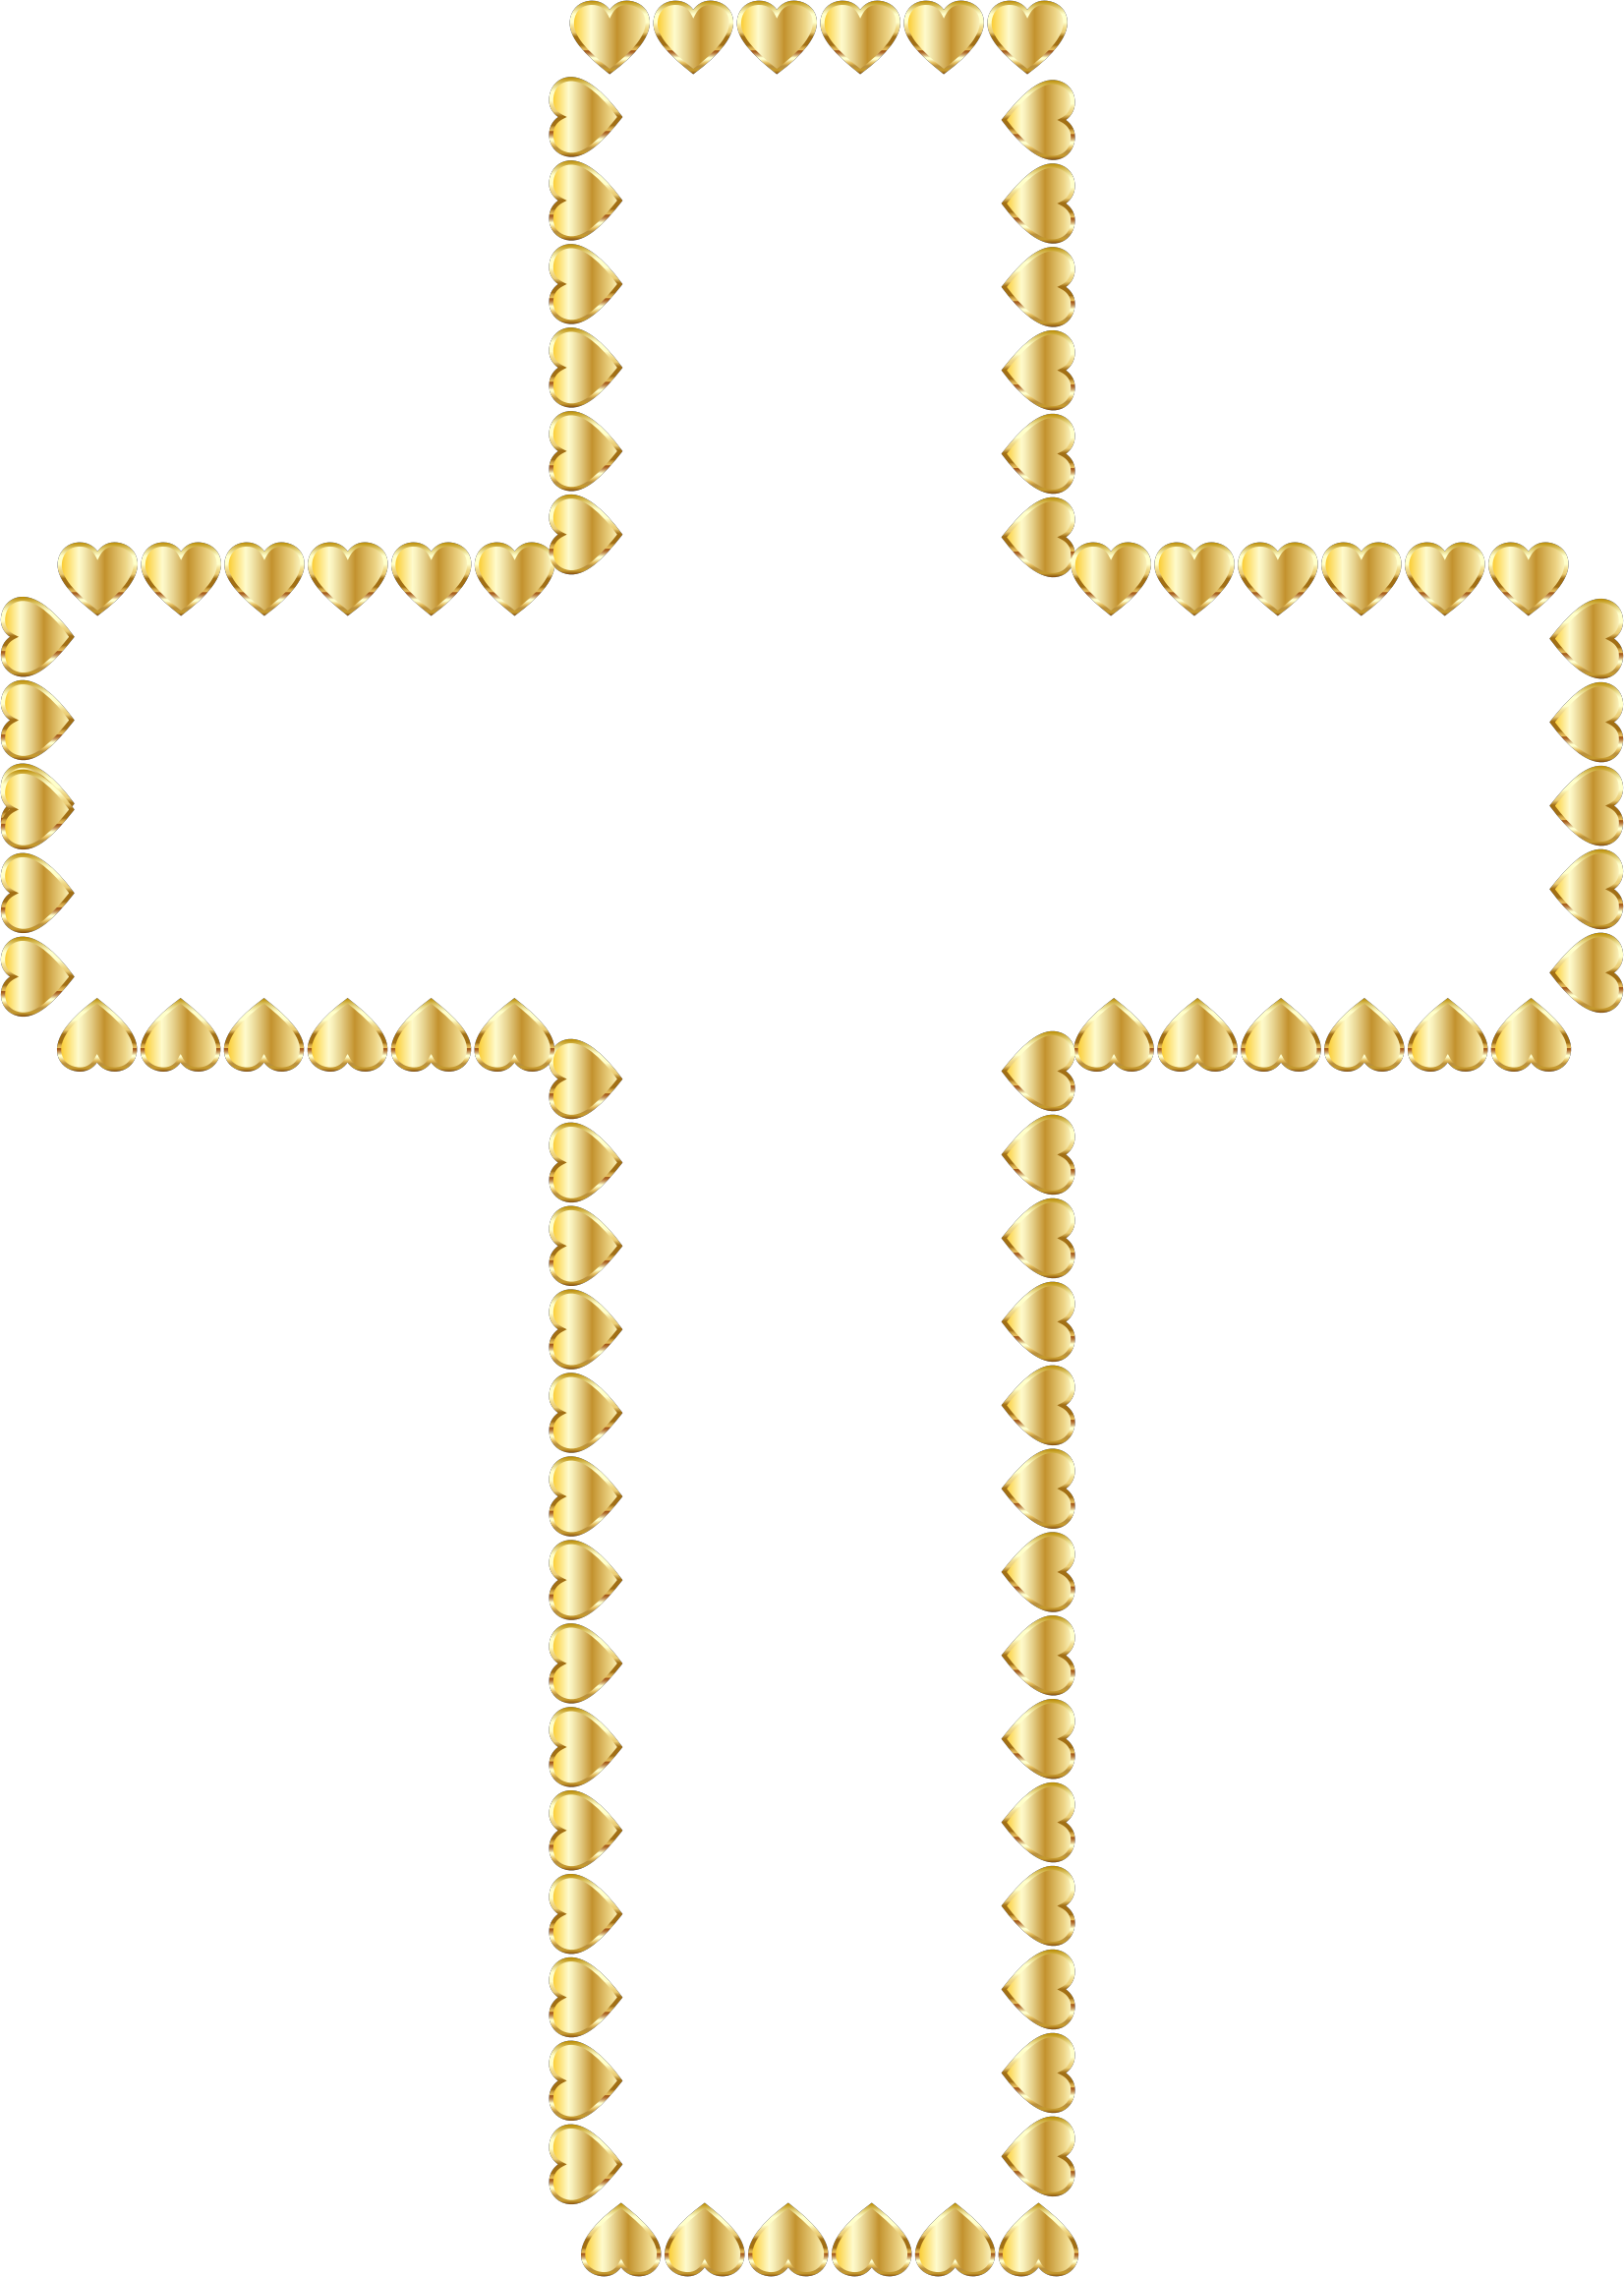 Golden Cross Hearts No Background by GDJ